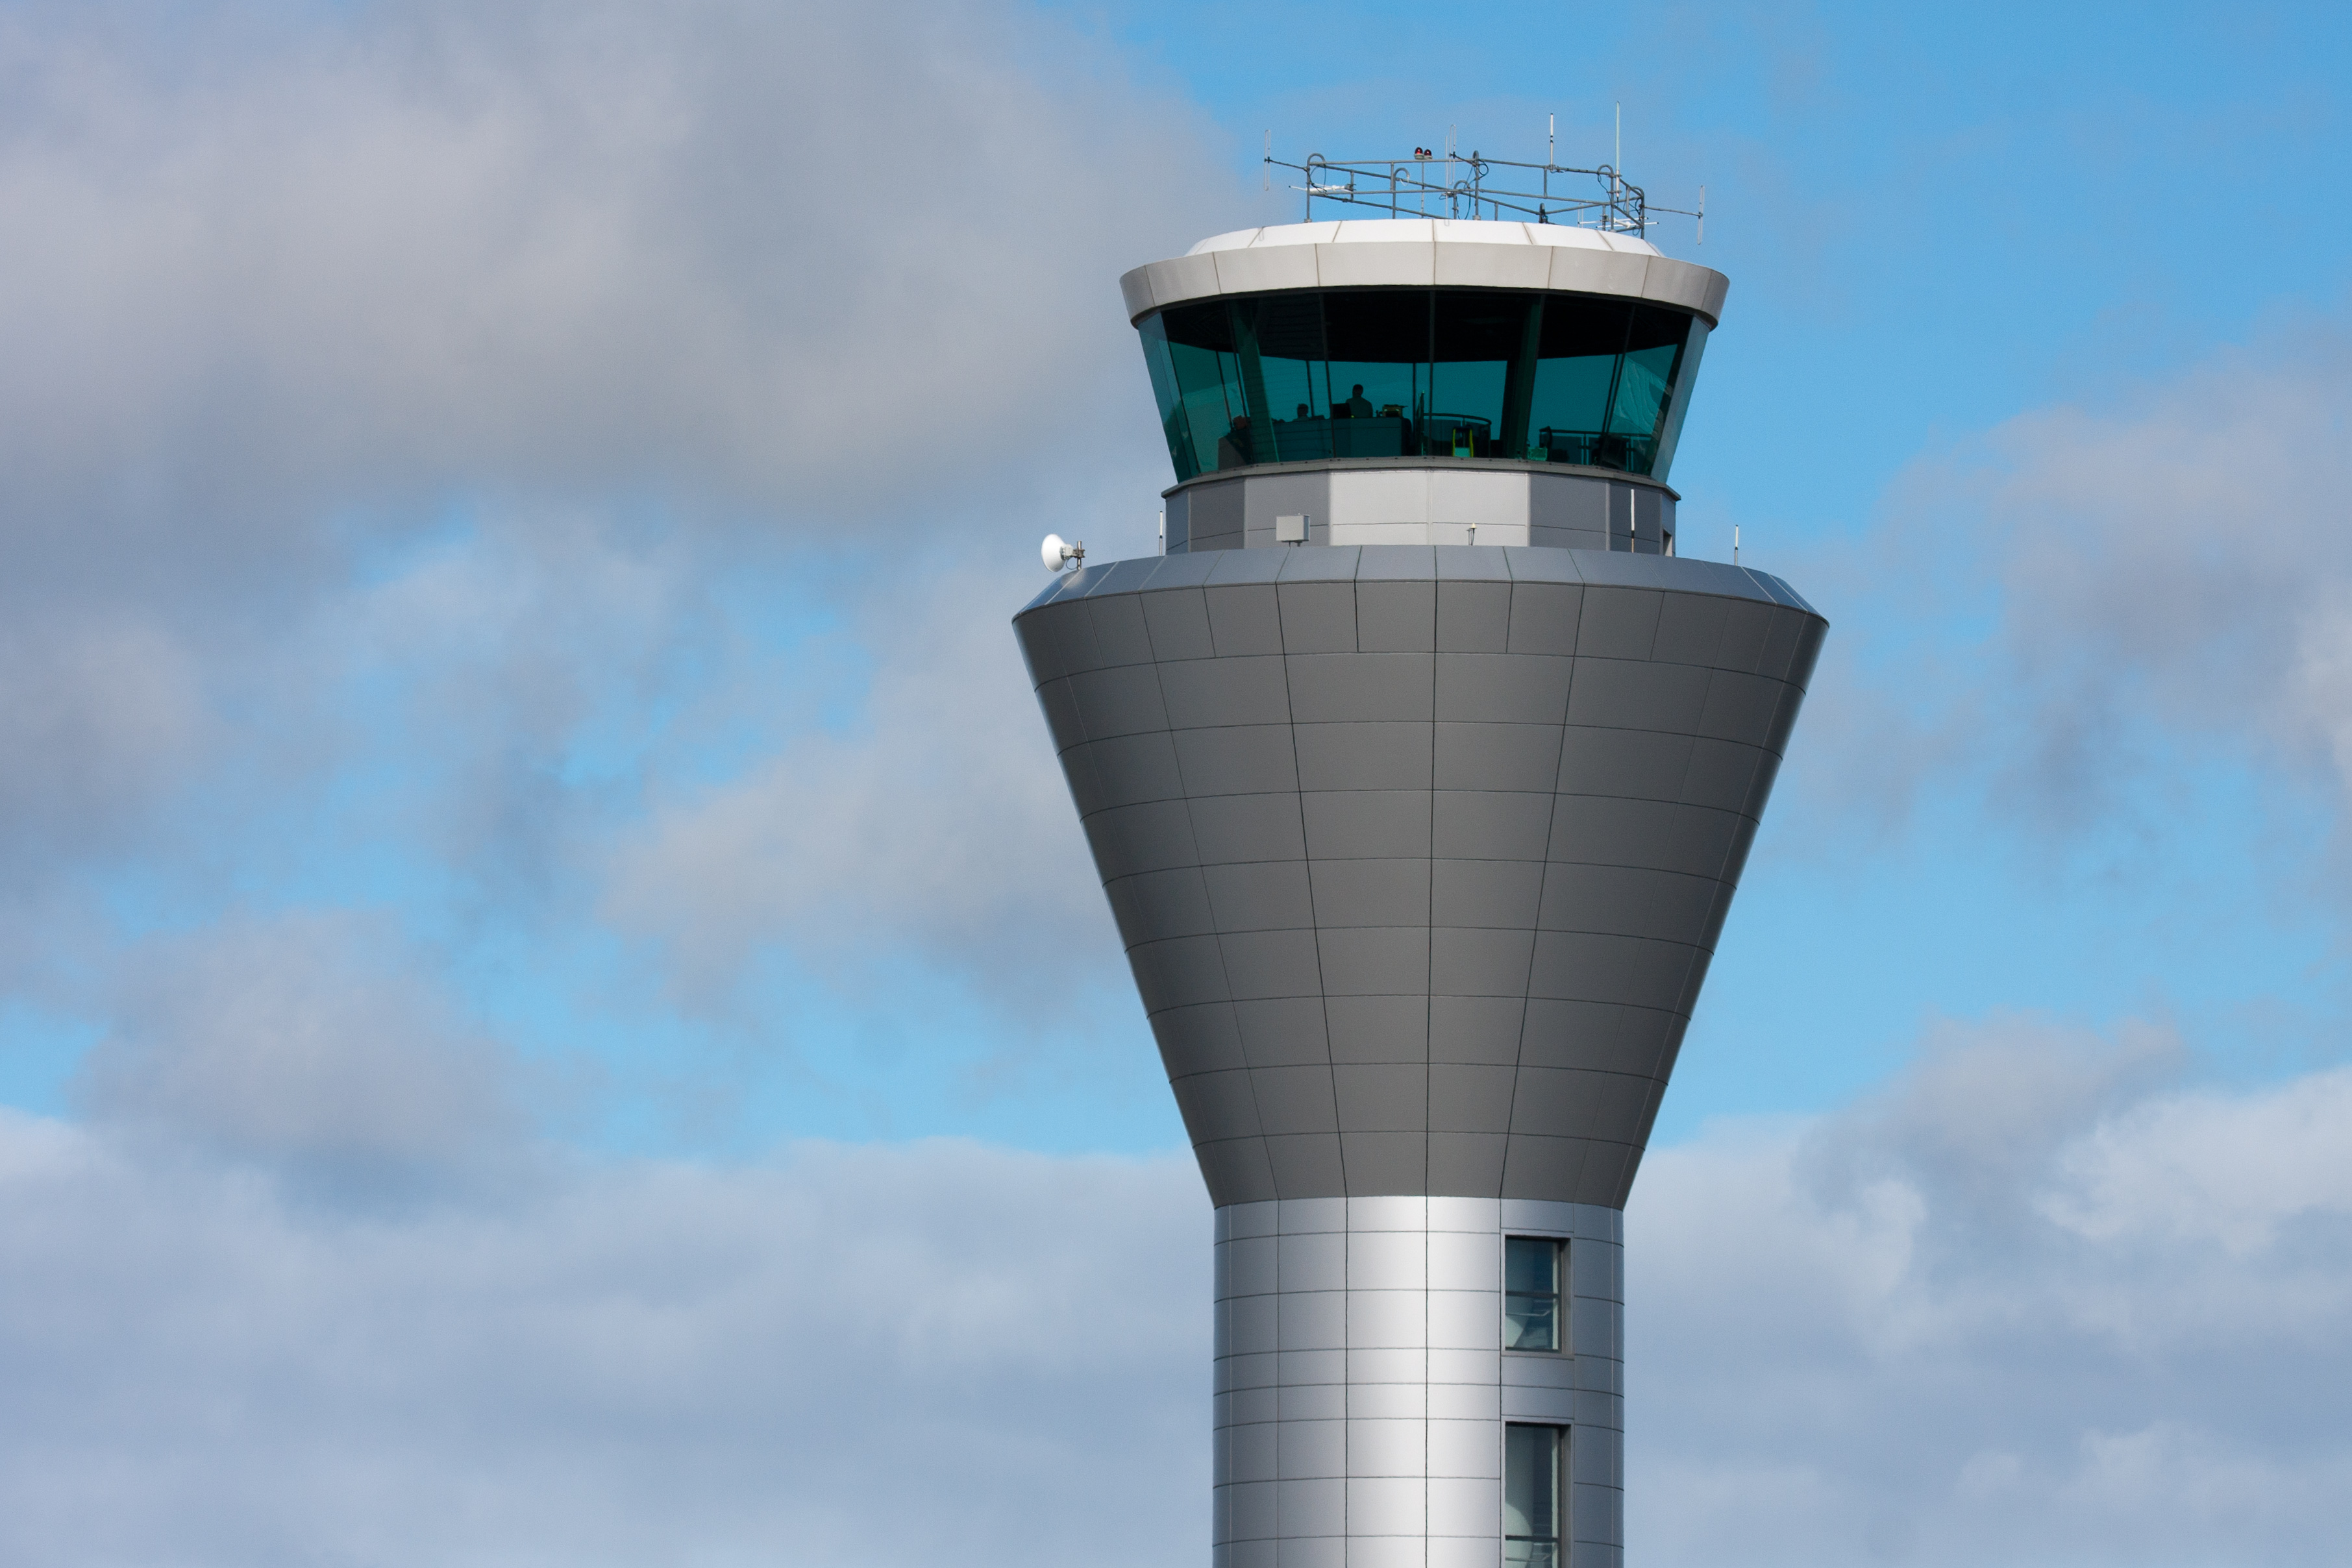 File:Jersey Airport control tower.jpg - Wikimedia Commons